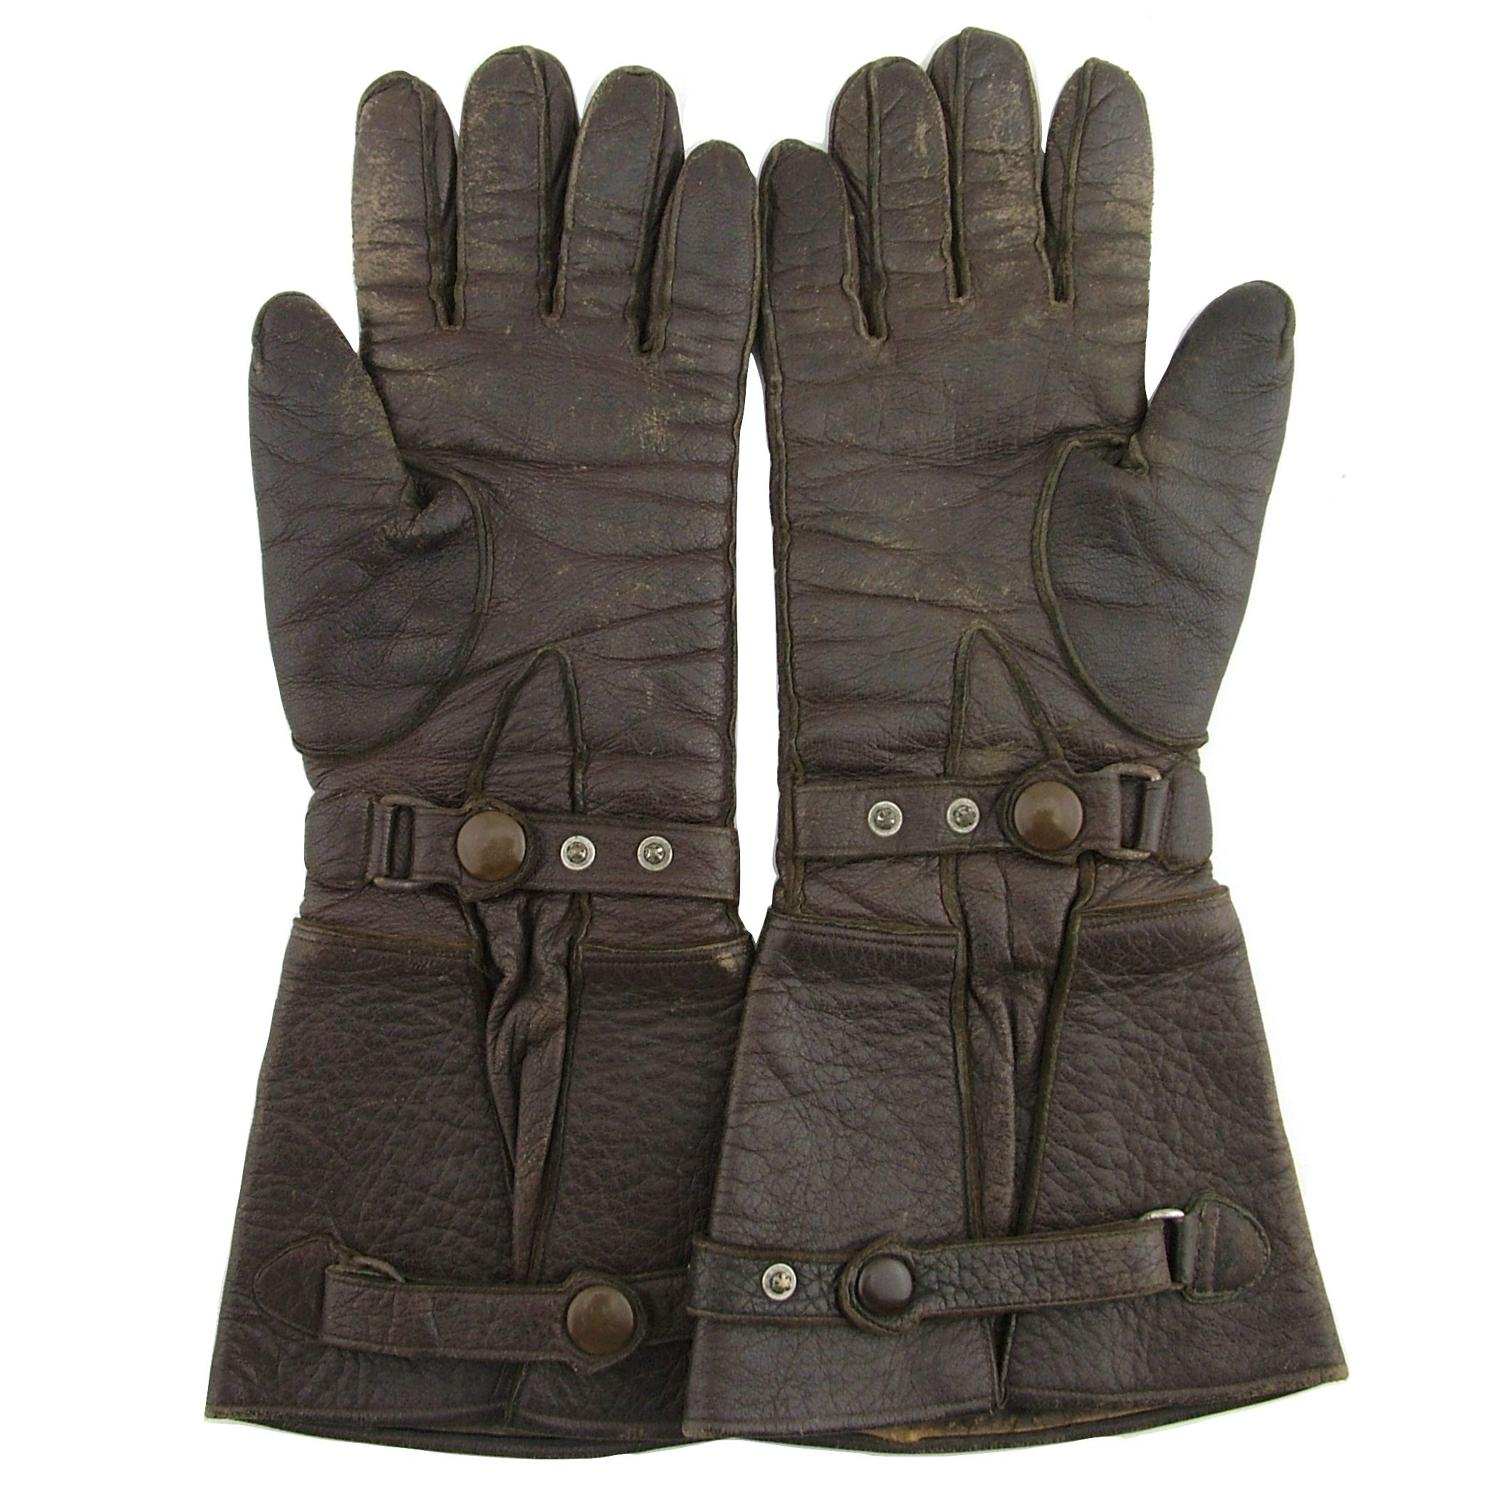 Gants Luftwaffe ? Luftwaffe-flying-gauntlets_16736_pic2_size3